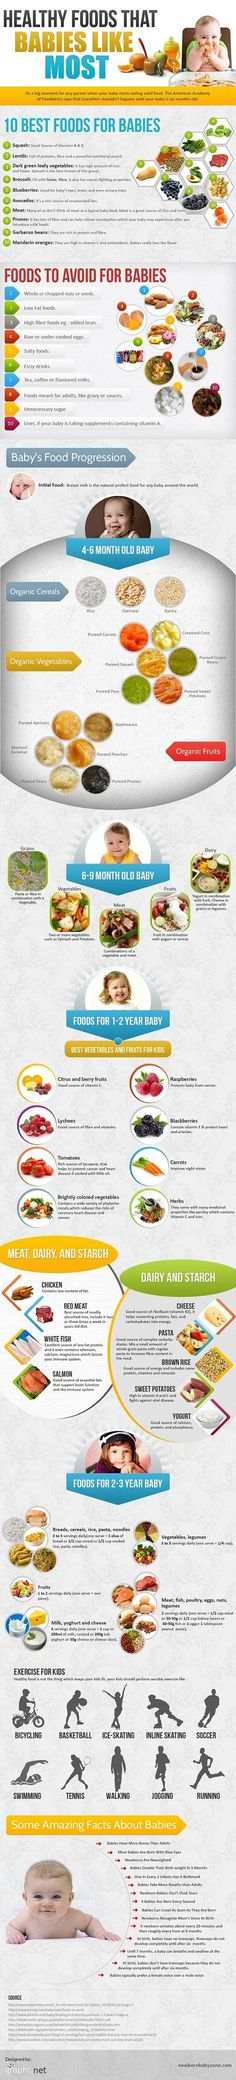 Baby Nutrition Guide: When it comes to your little baby you want the best. This graphic gives new parents an overall view of the healthiest foods they should feed their little throughout the first 3 years of its development that reportedly are the most critical ones.